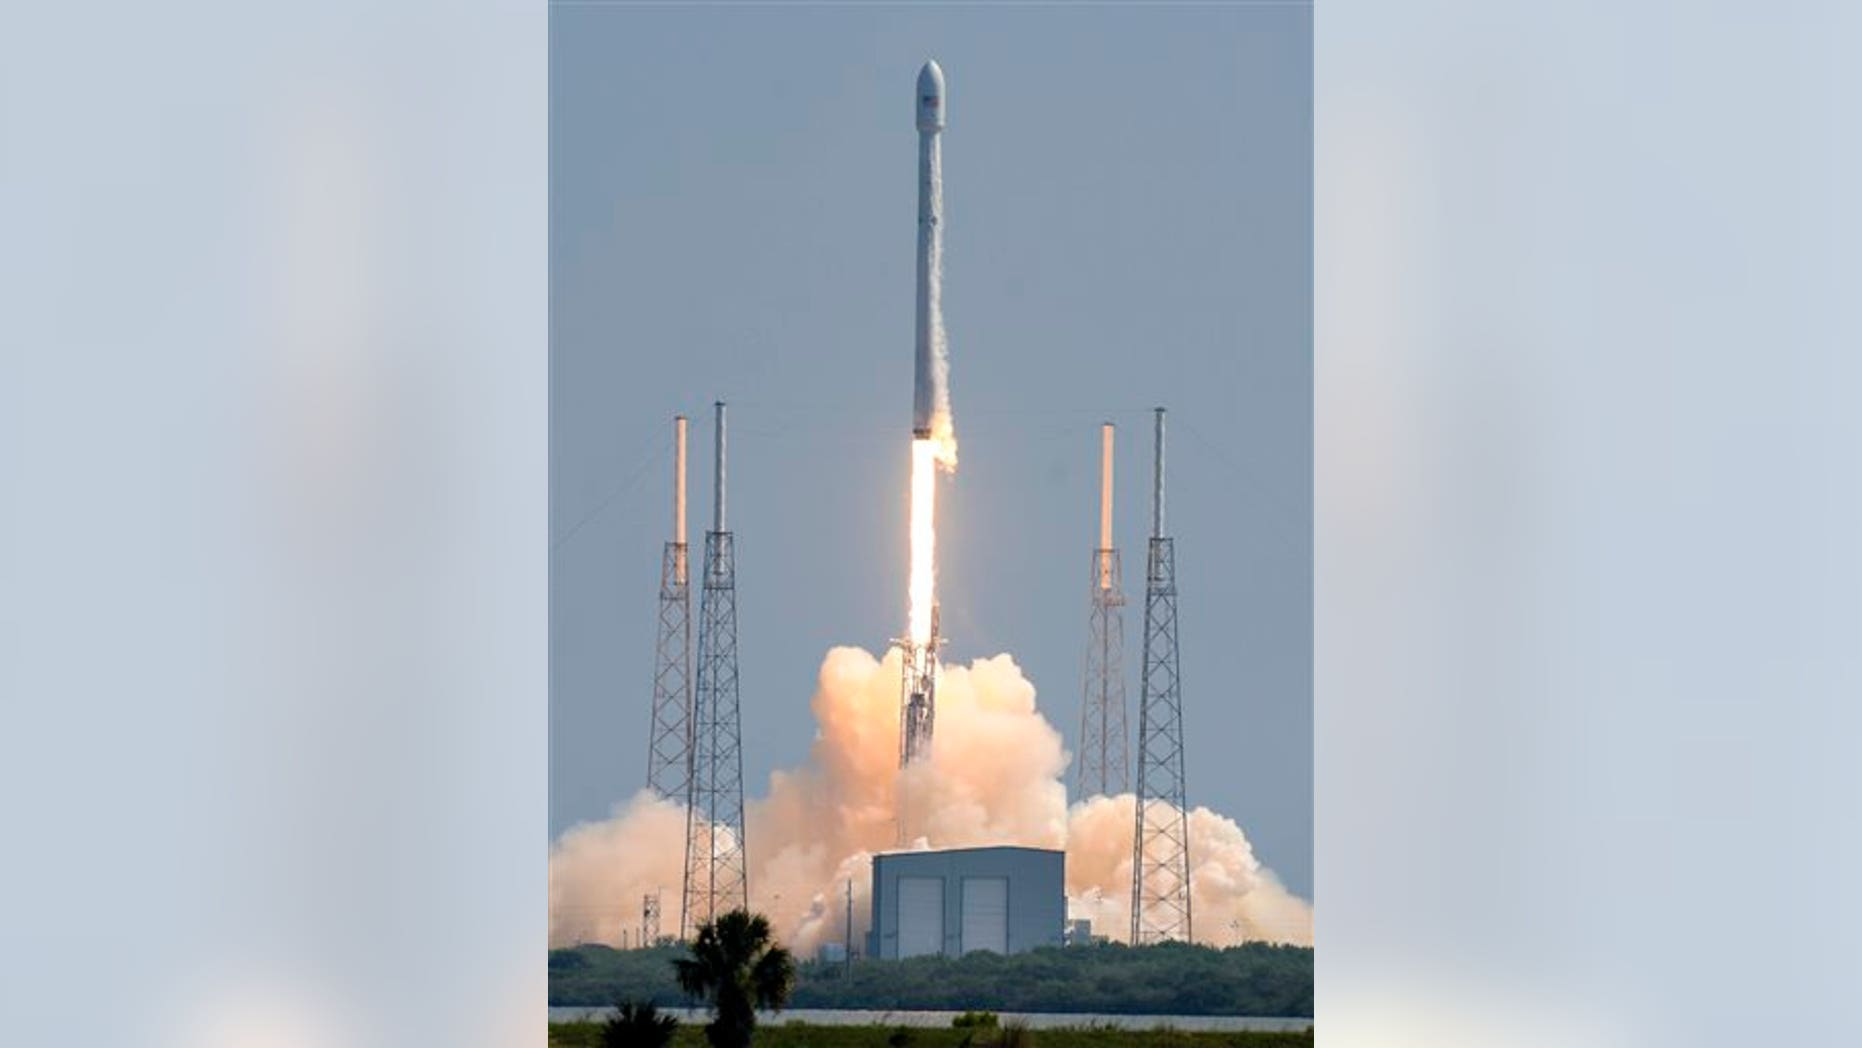 A SpaceX Falcon 9 rocket blasts off from Cape Canaveral Air Force Station Wednesday morning, June 15, 2016, carrying a pair of commercial communications satellites. (Craig Bailey/Florida Today via AP)